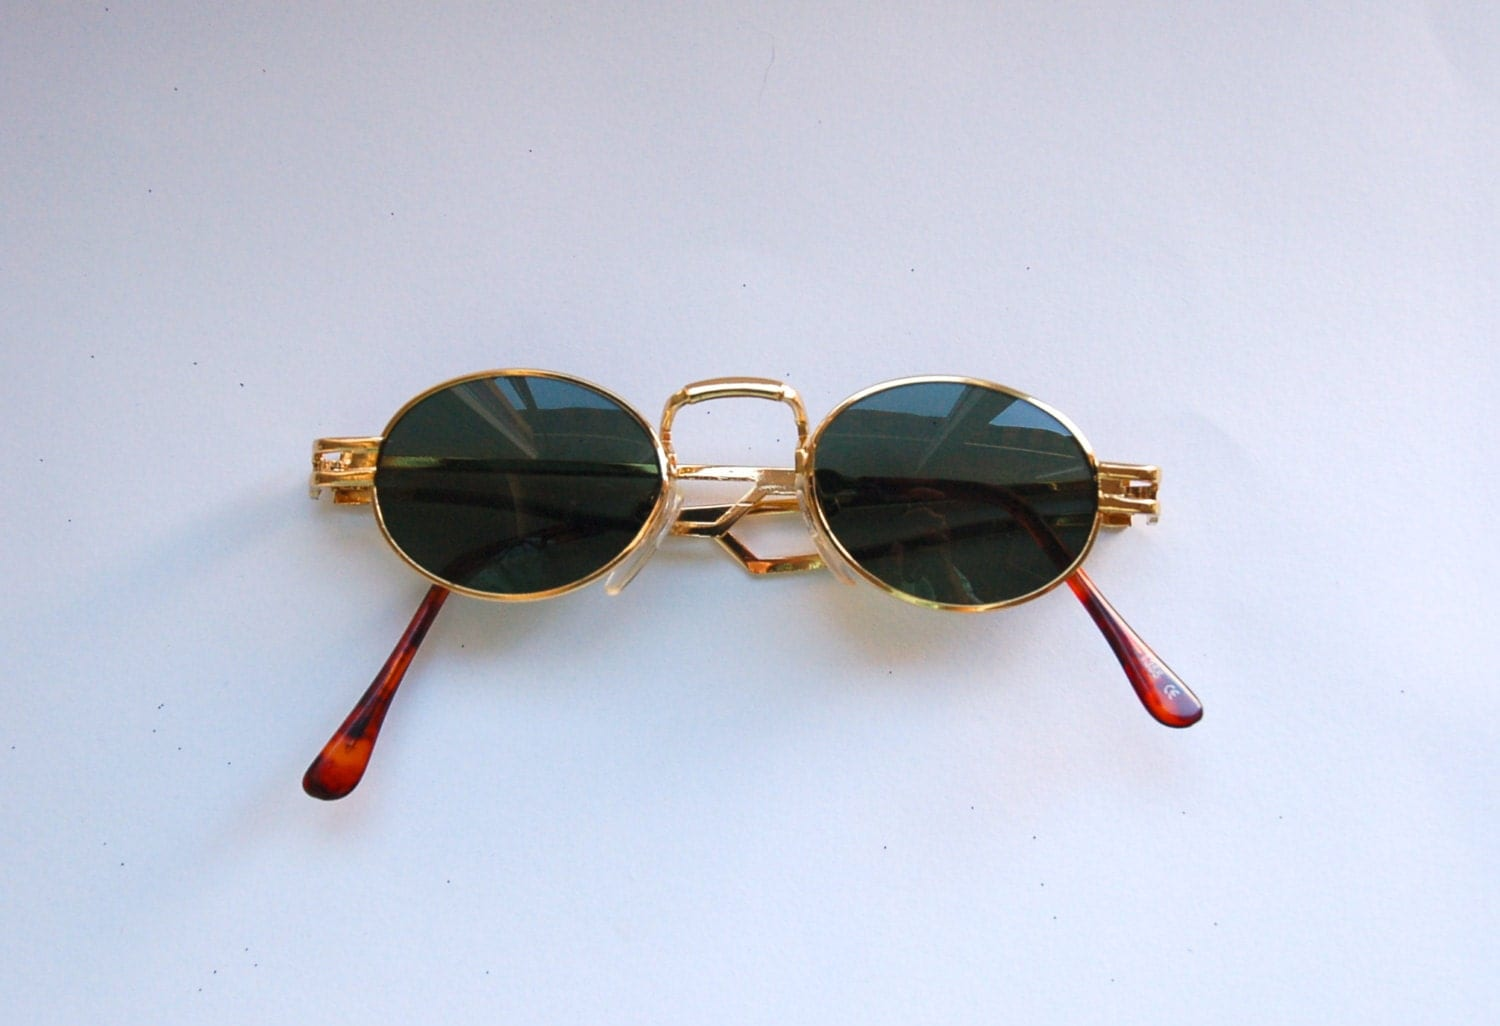 Gold Frame Oval Sunglasses : Authentic Vintage 90s Circle Sunglasses/ Oval Shades w Gold